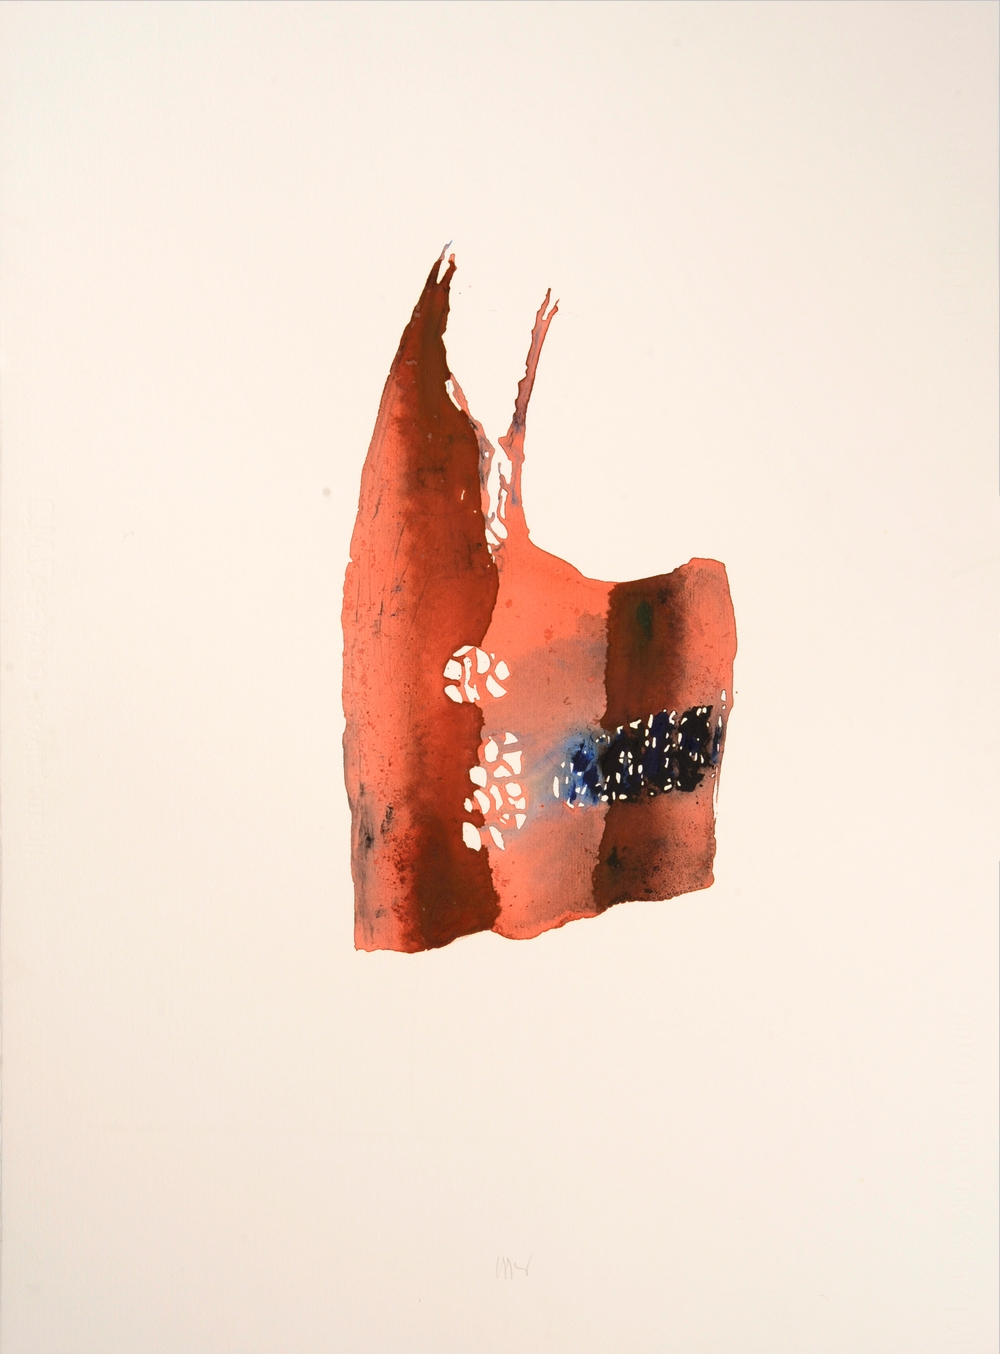 "senza titolo, dalla serie ""Pagine sparse"", 1995, acrilico su carta Fabriano, cm 76 x 57  untitled, from the series ""Pagine sparse"", 1995, acrylic on Fabriano paper, cm 76 x 57"